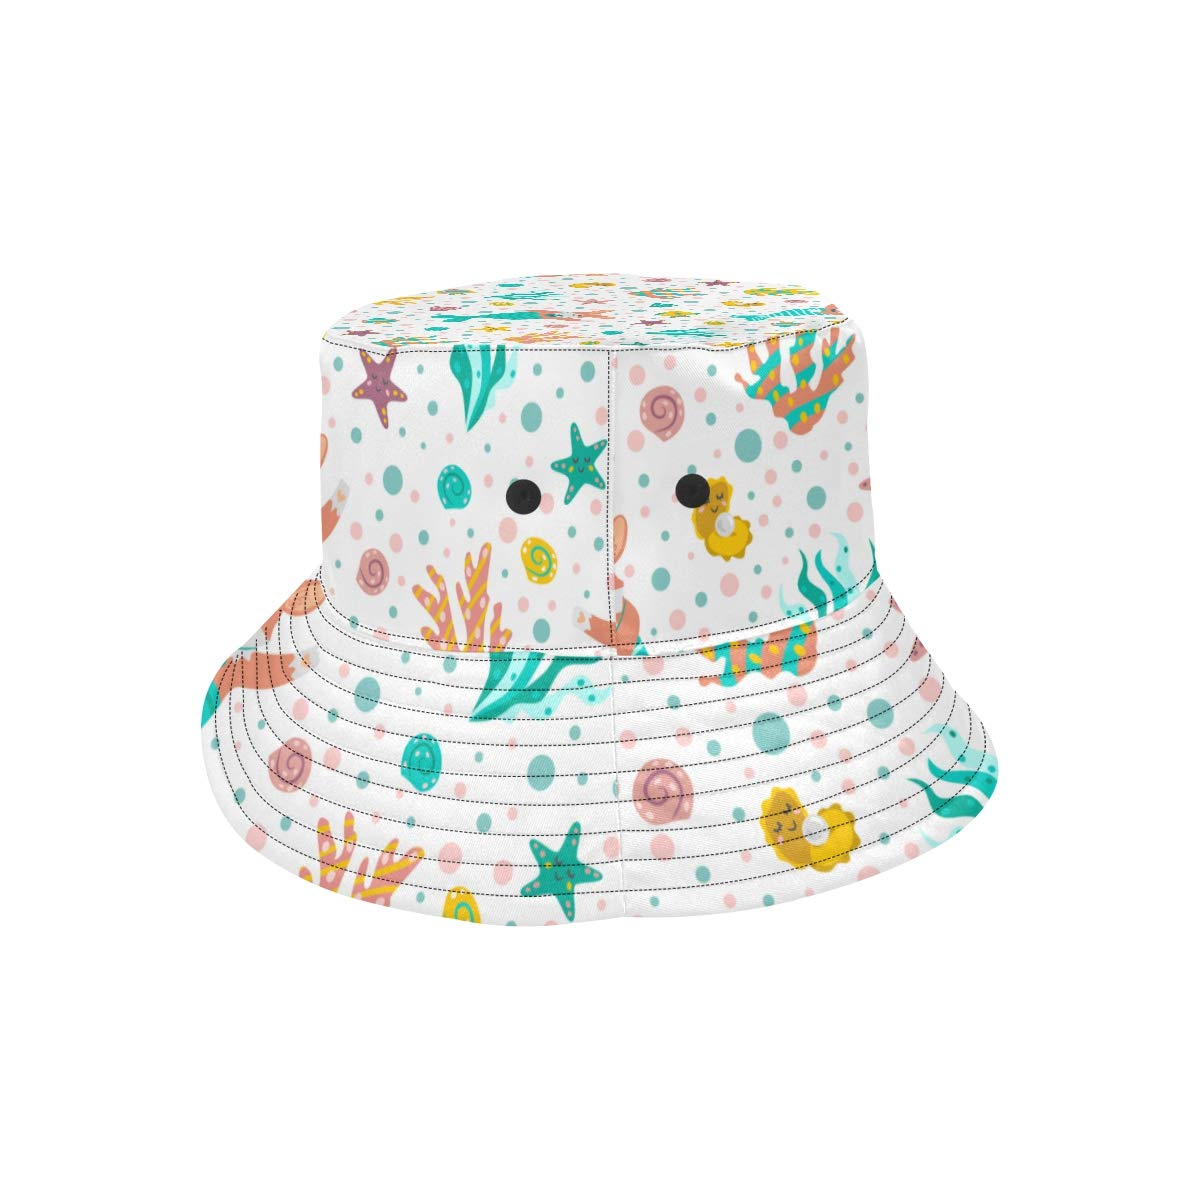 Women and Men with Customize Top Packable Fisherman Cap for Outdoor Travel Funny Dog with Mermaid Tail New Summer Unisex Cotton Fashion Fishing Sun Bucket Hats for Kid Teens